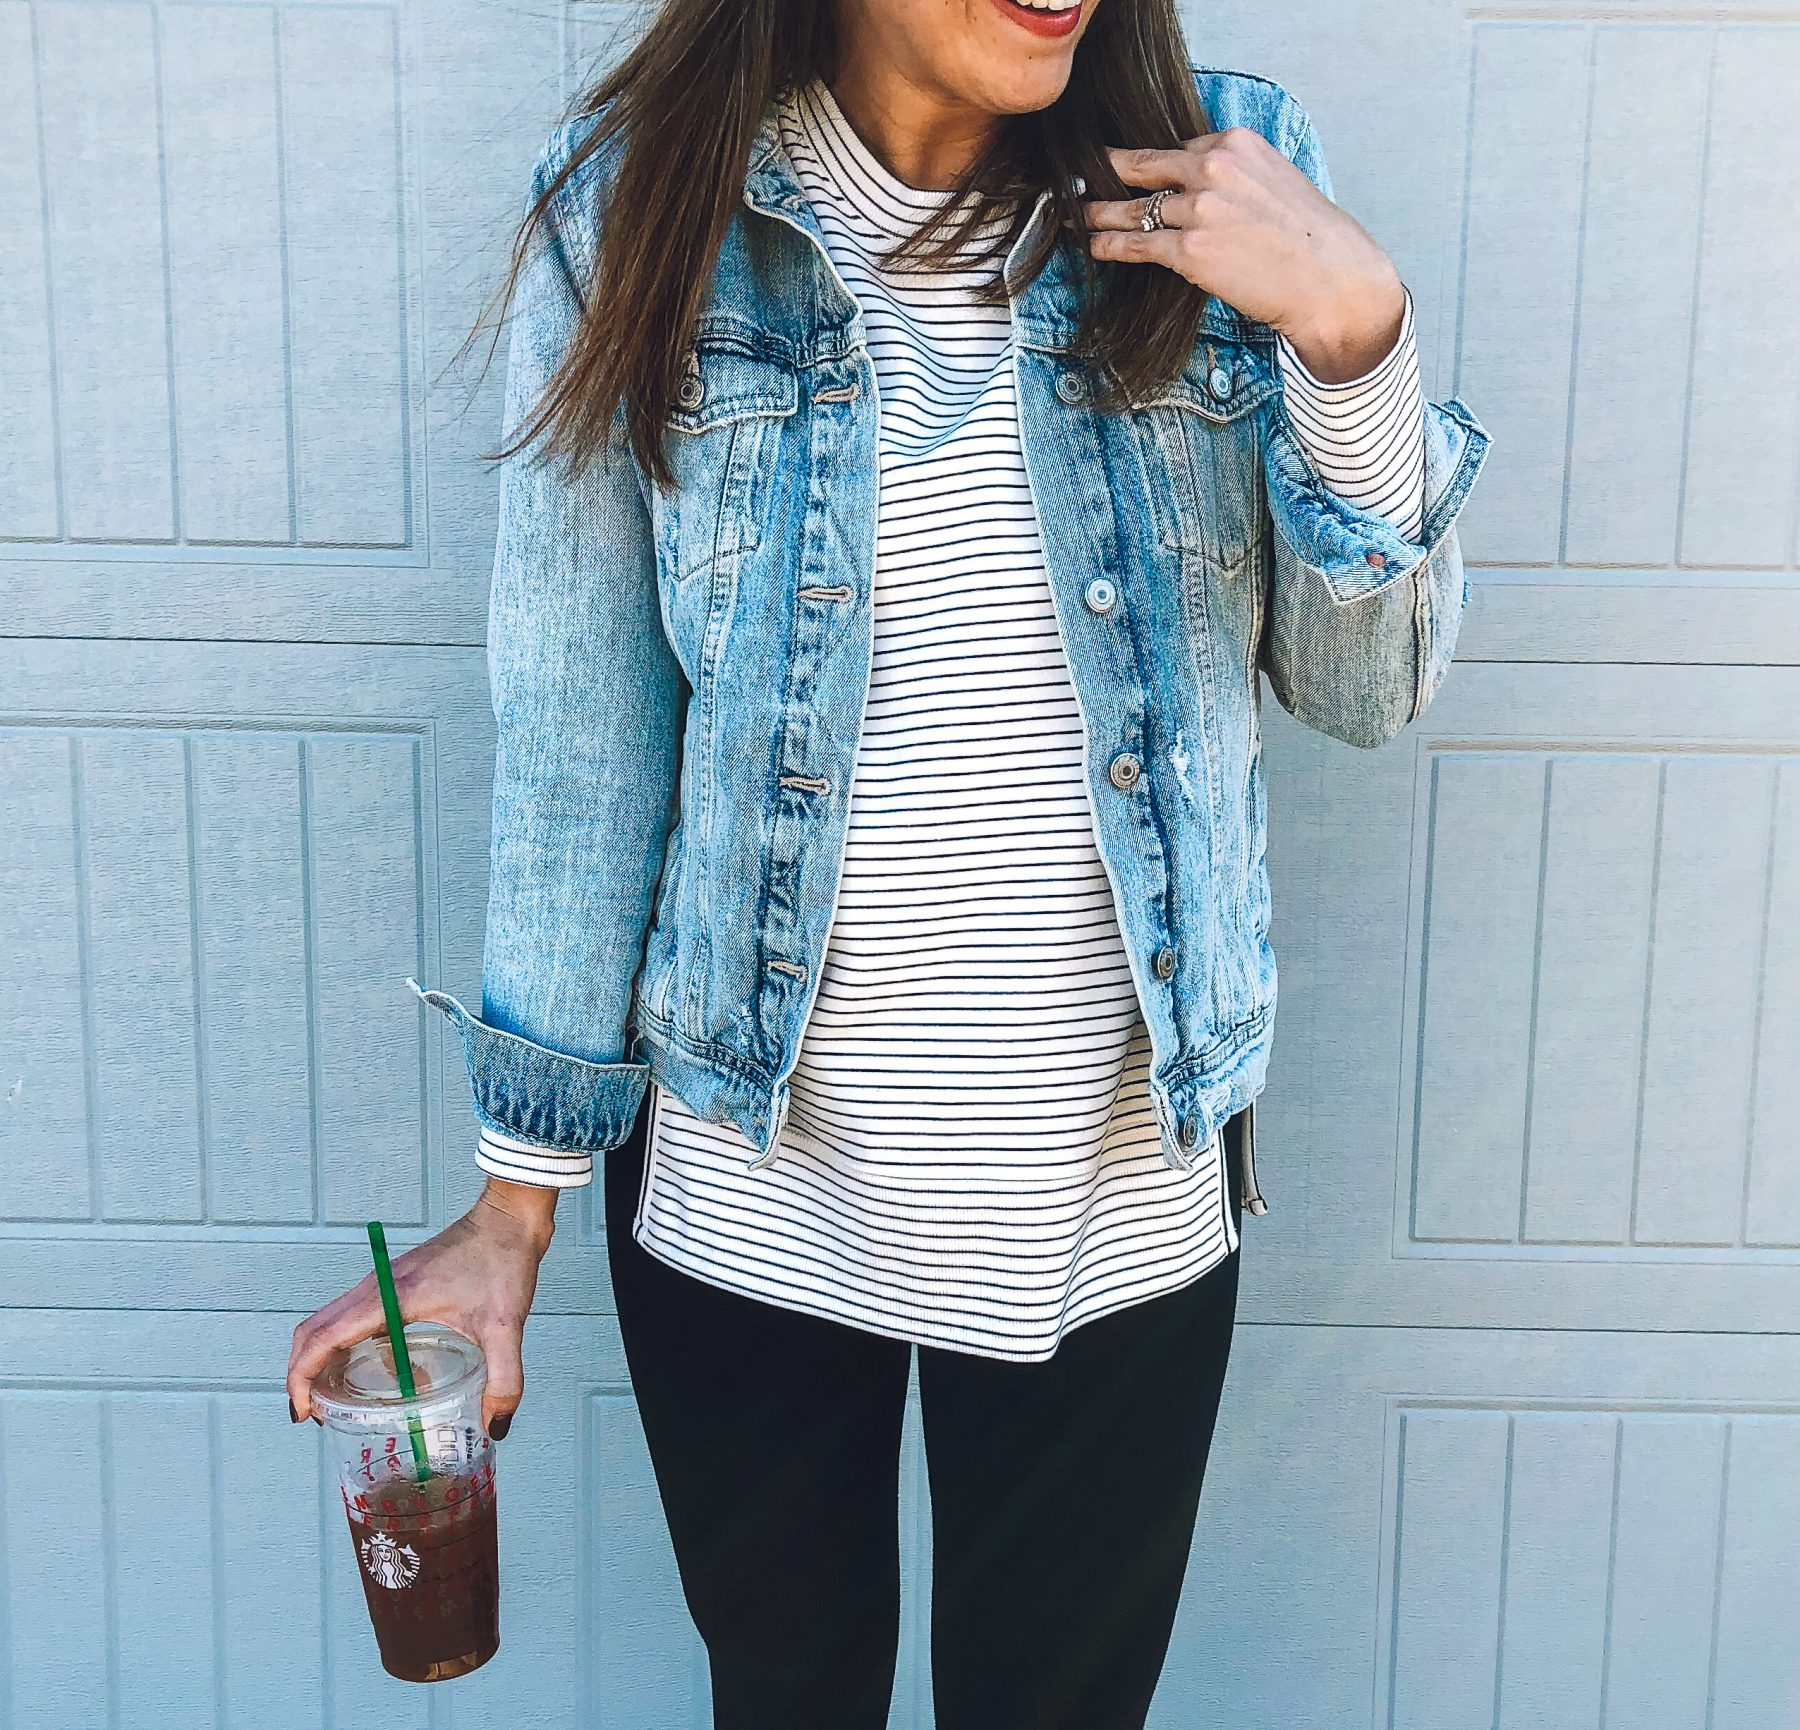 Old Navy Denim Jacket Styled 3 Easy Ways